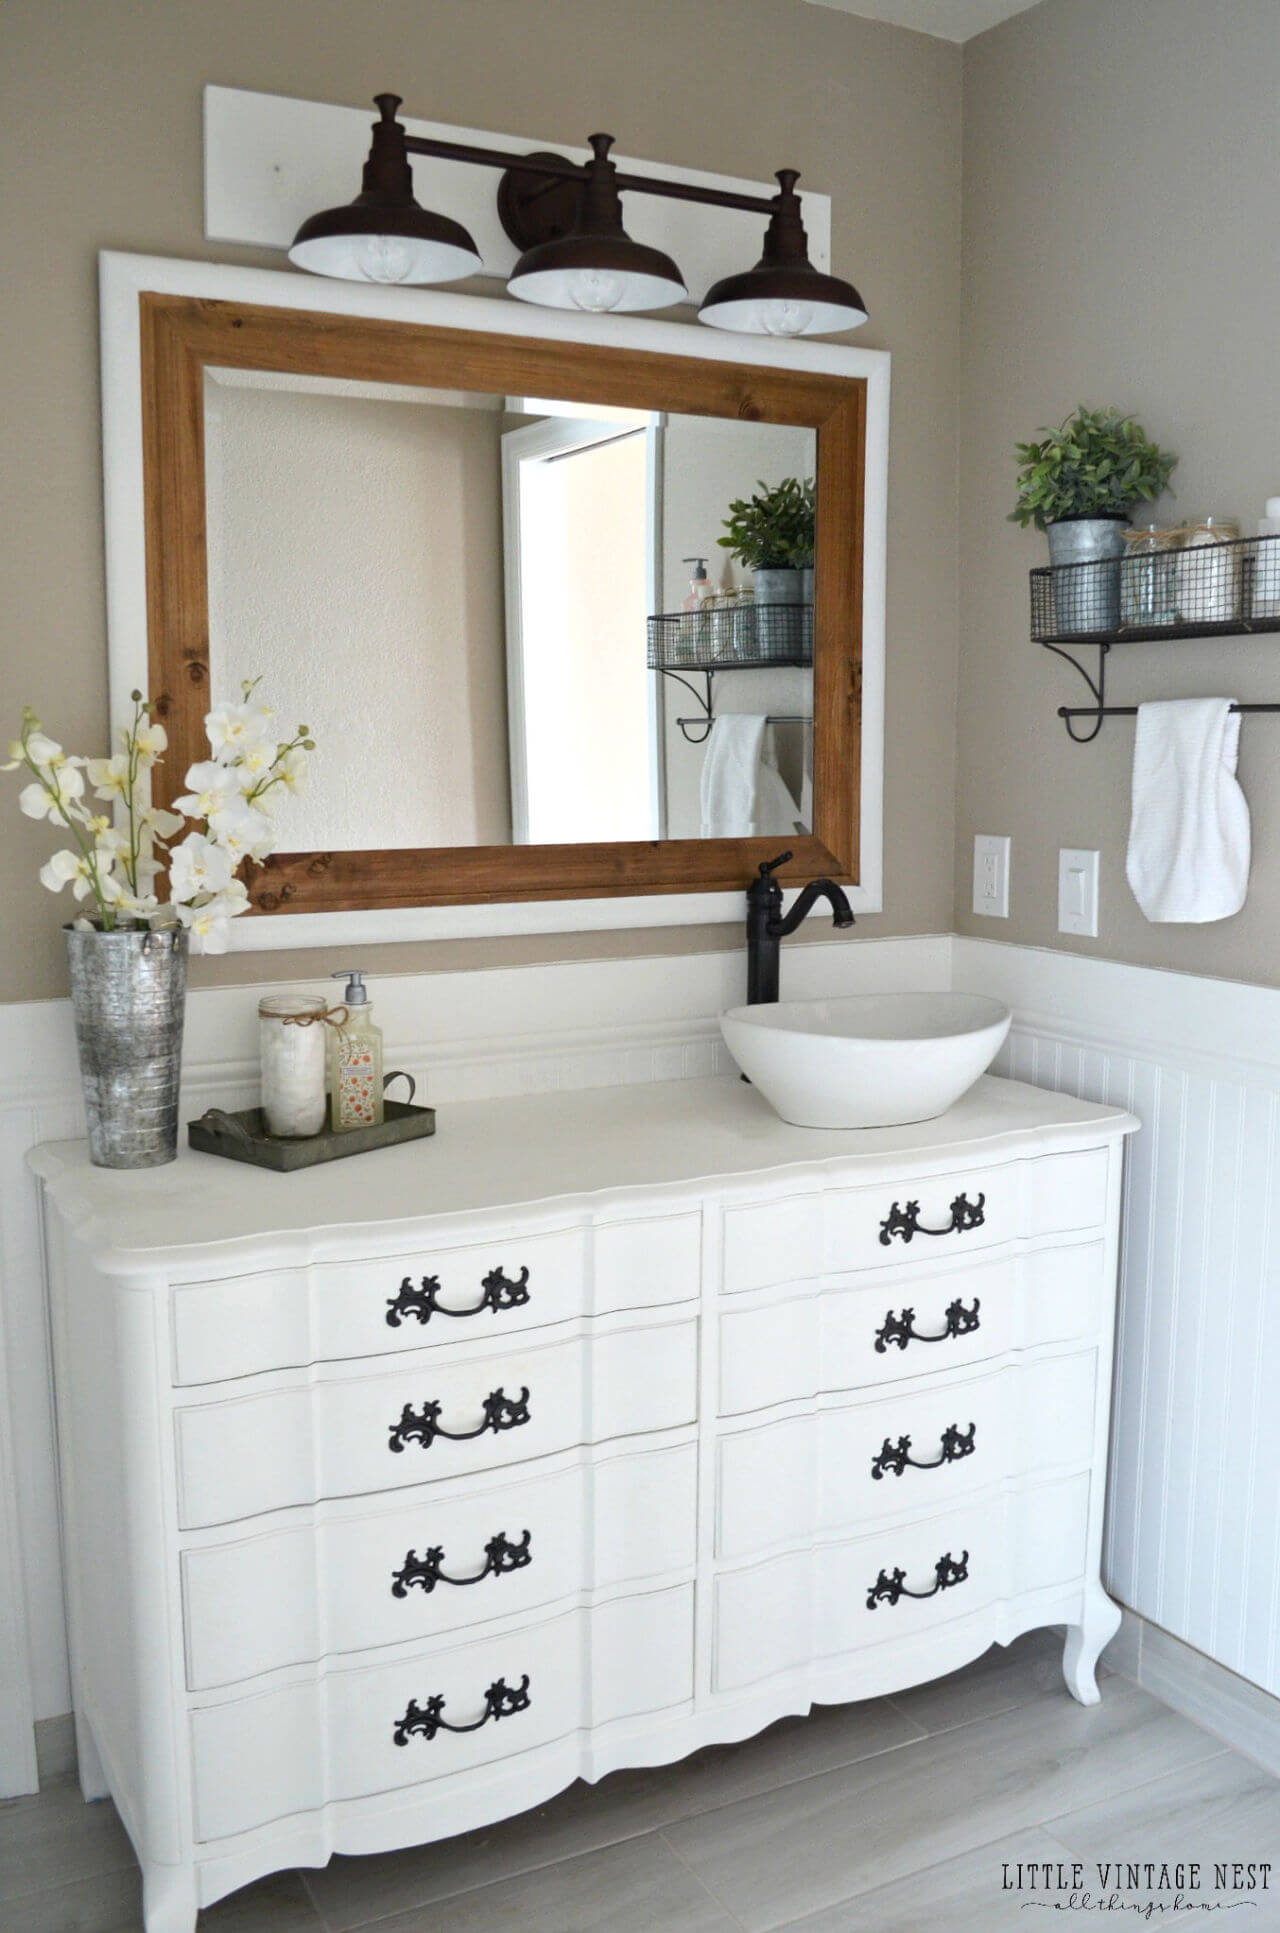 32 Best Small Bathroom Design Ideas and Decorations for 2020 on Bathroom Ideas For Small Space  id=65945